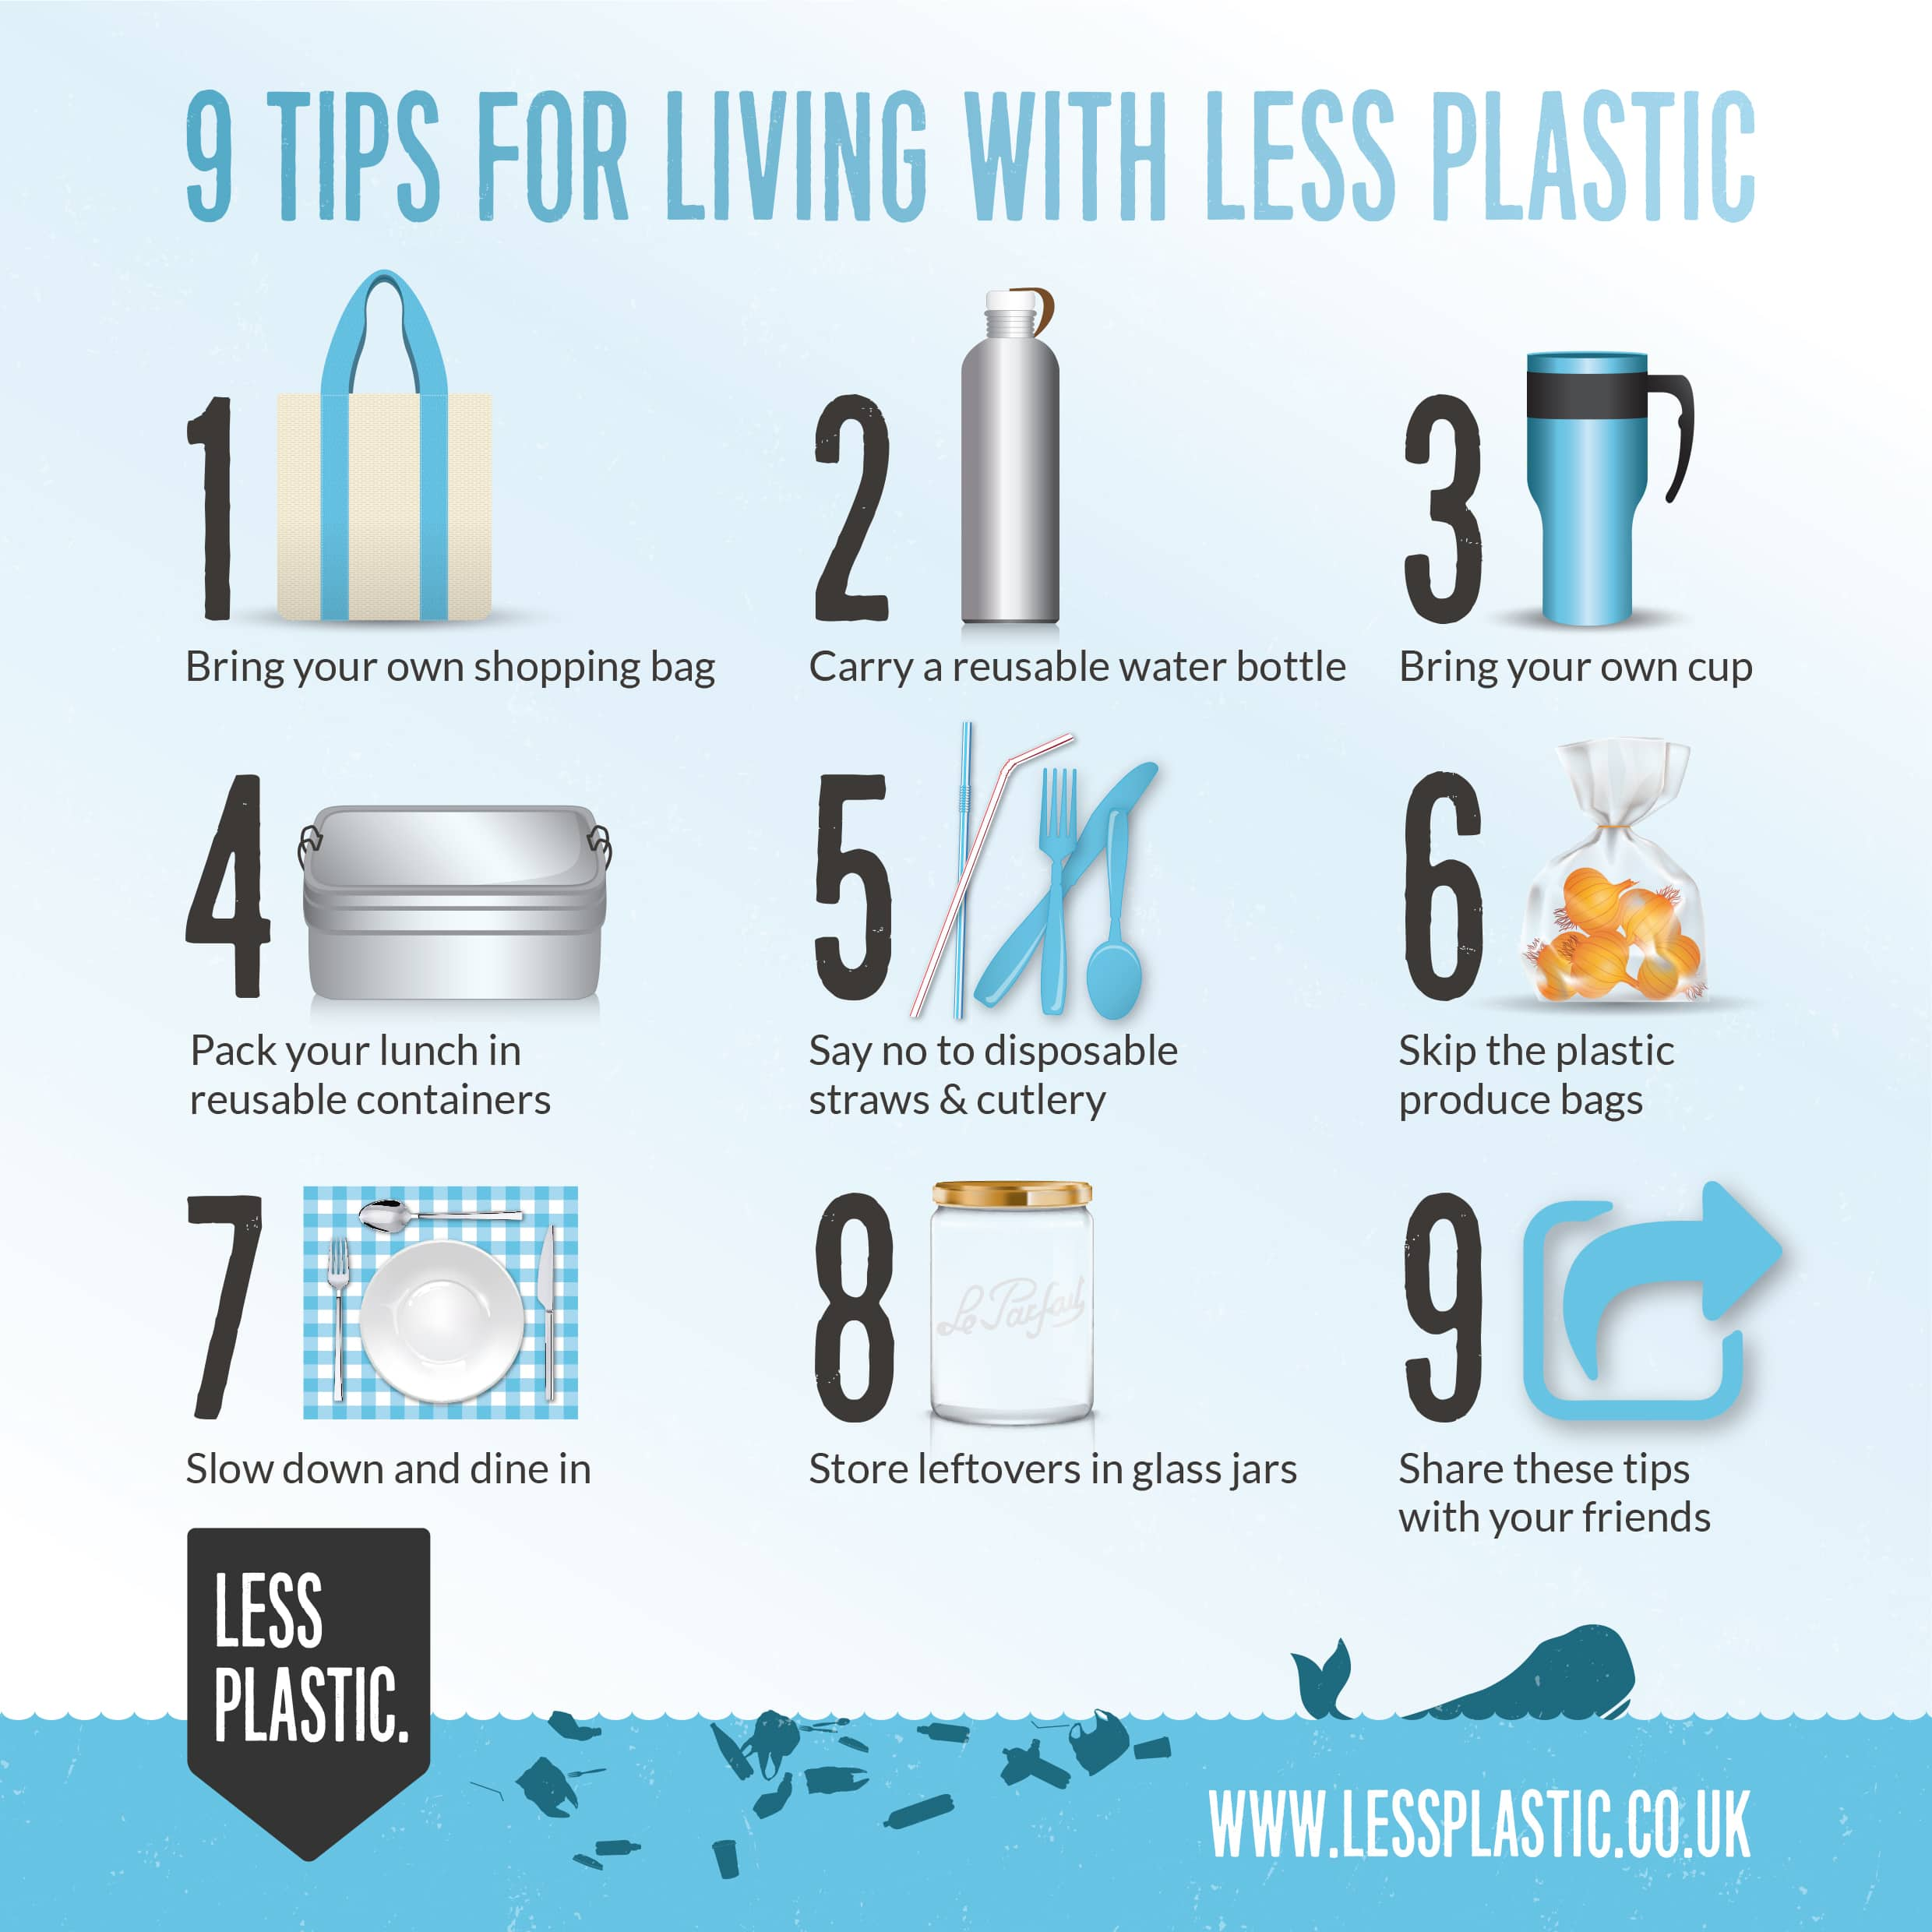 9 tips for living with less plastic infographic